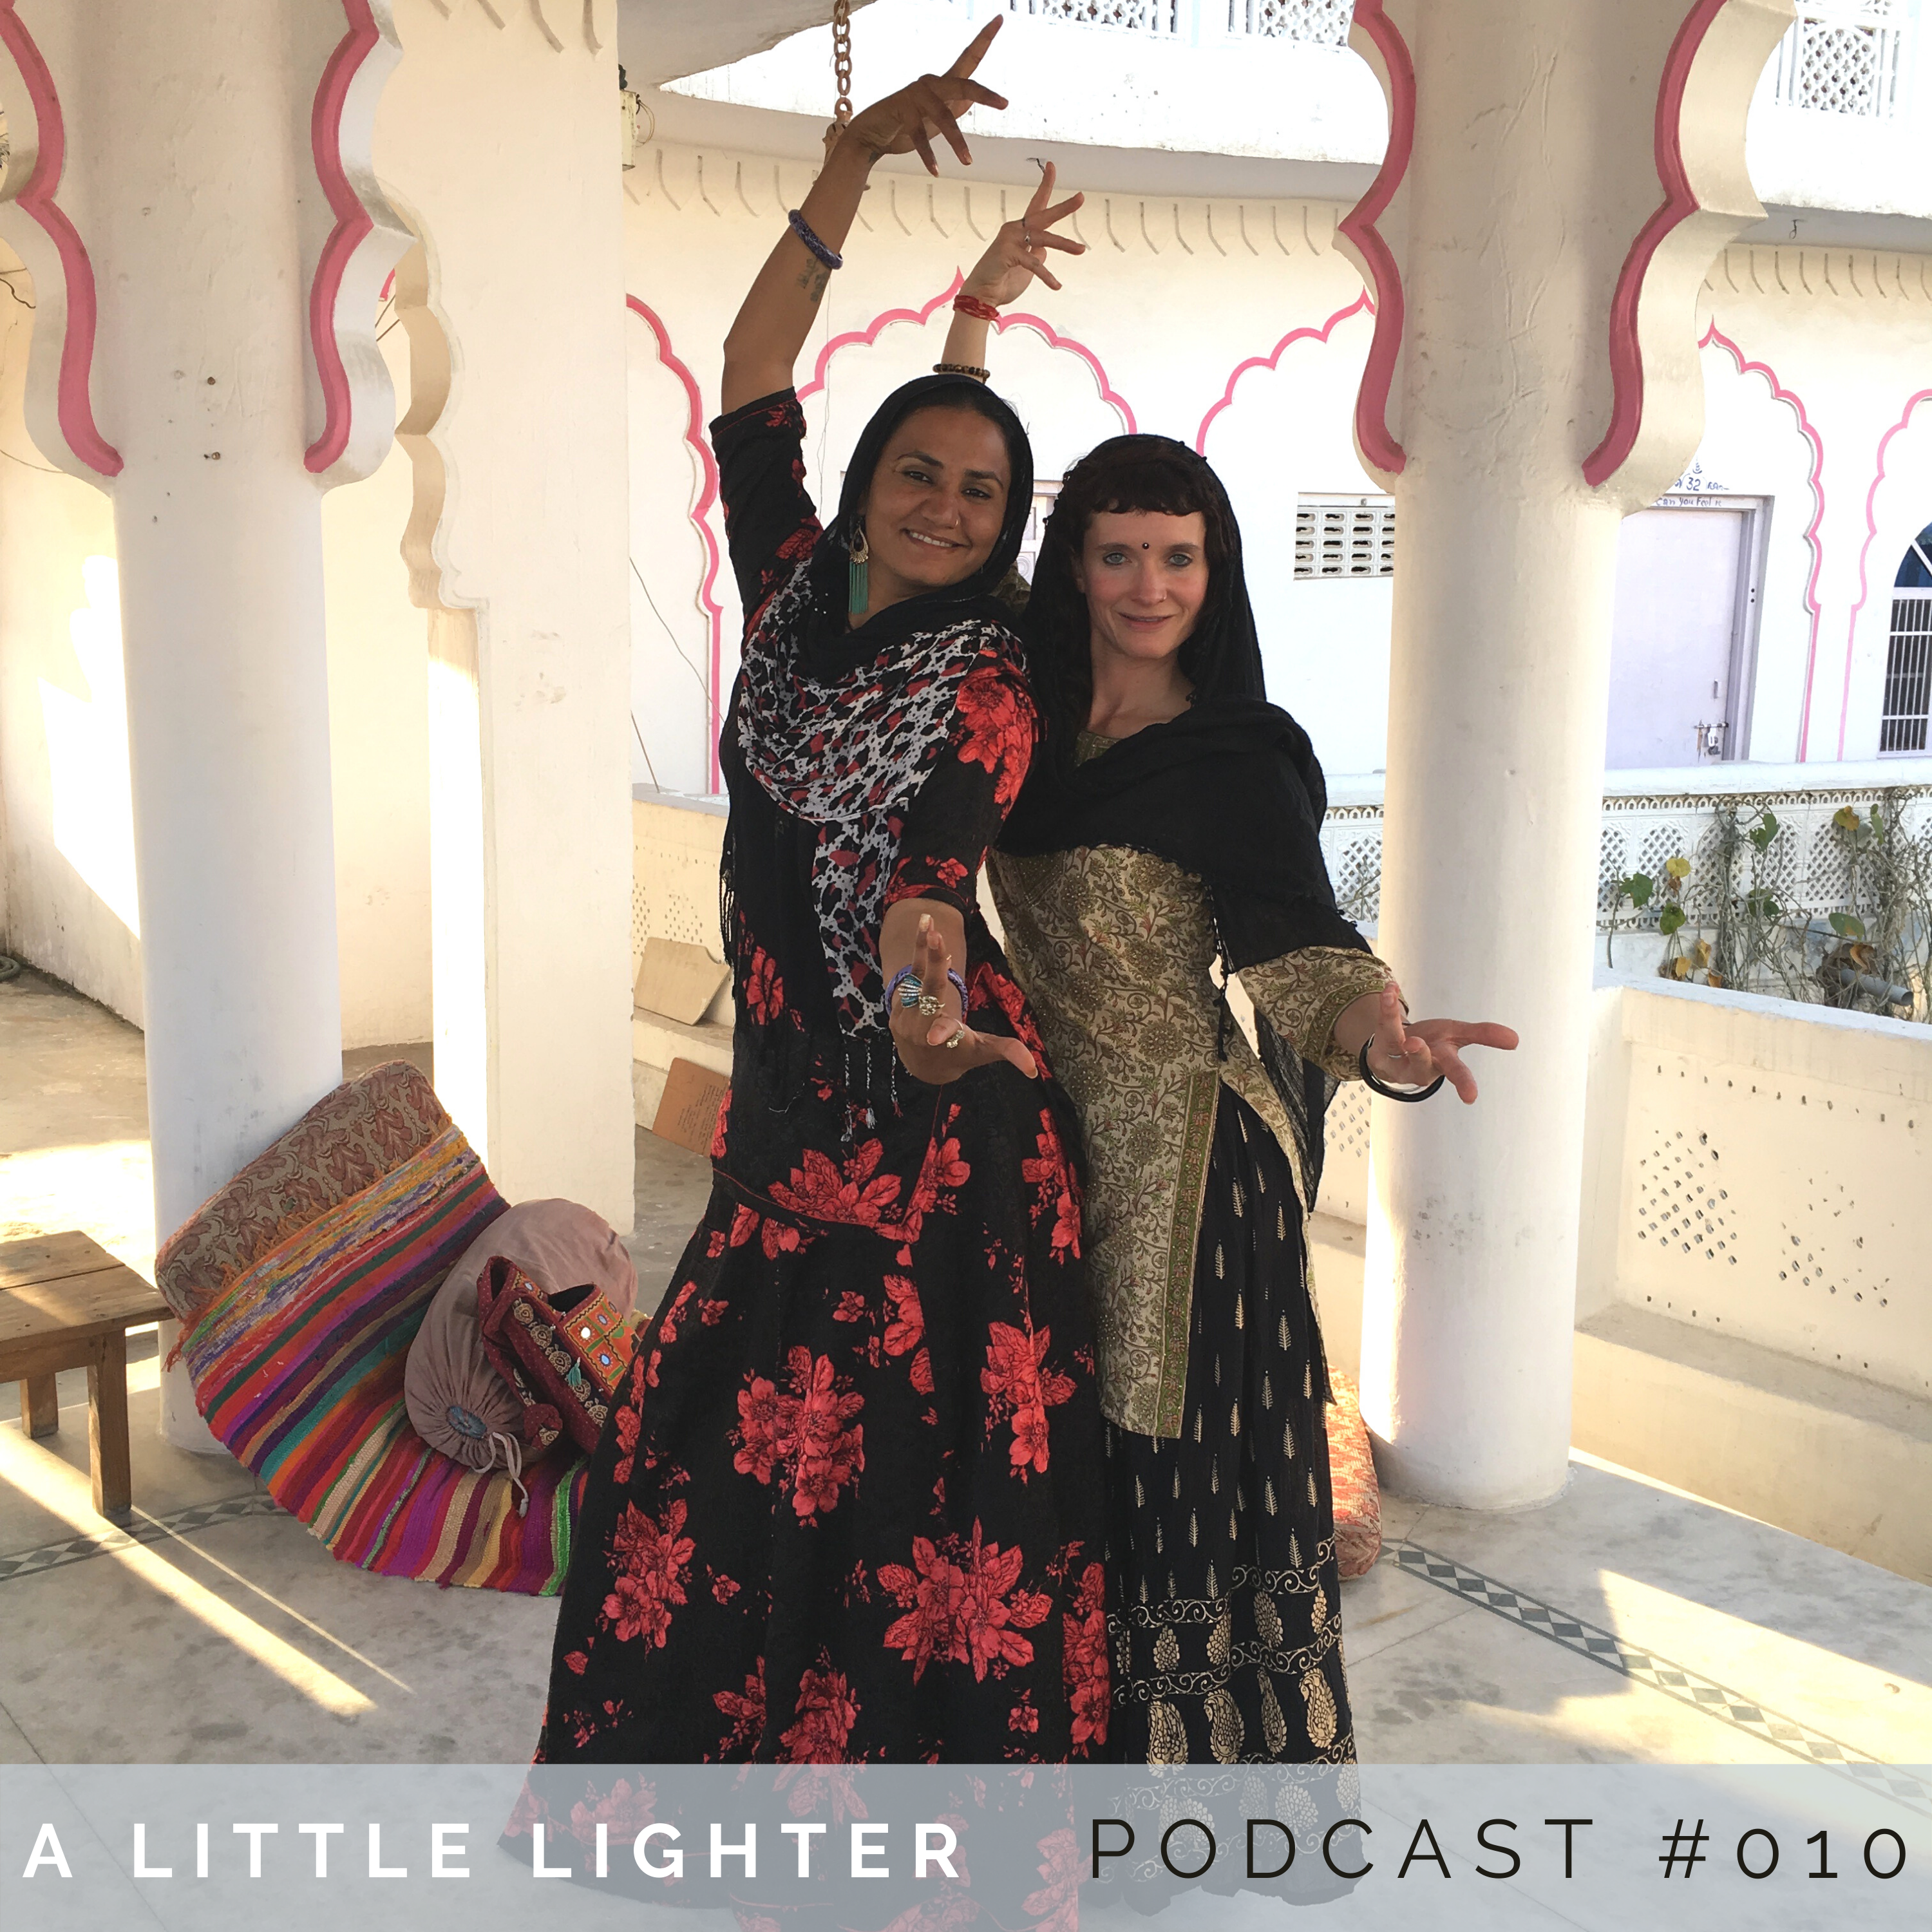 Belly Dance Podcast dancing with romani women in india the disputed birthplace of belly dance